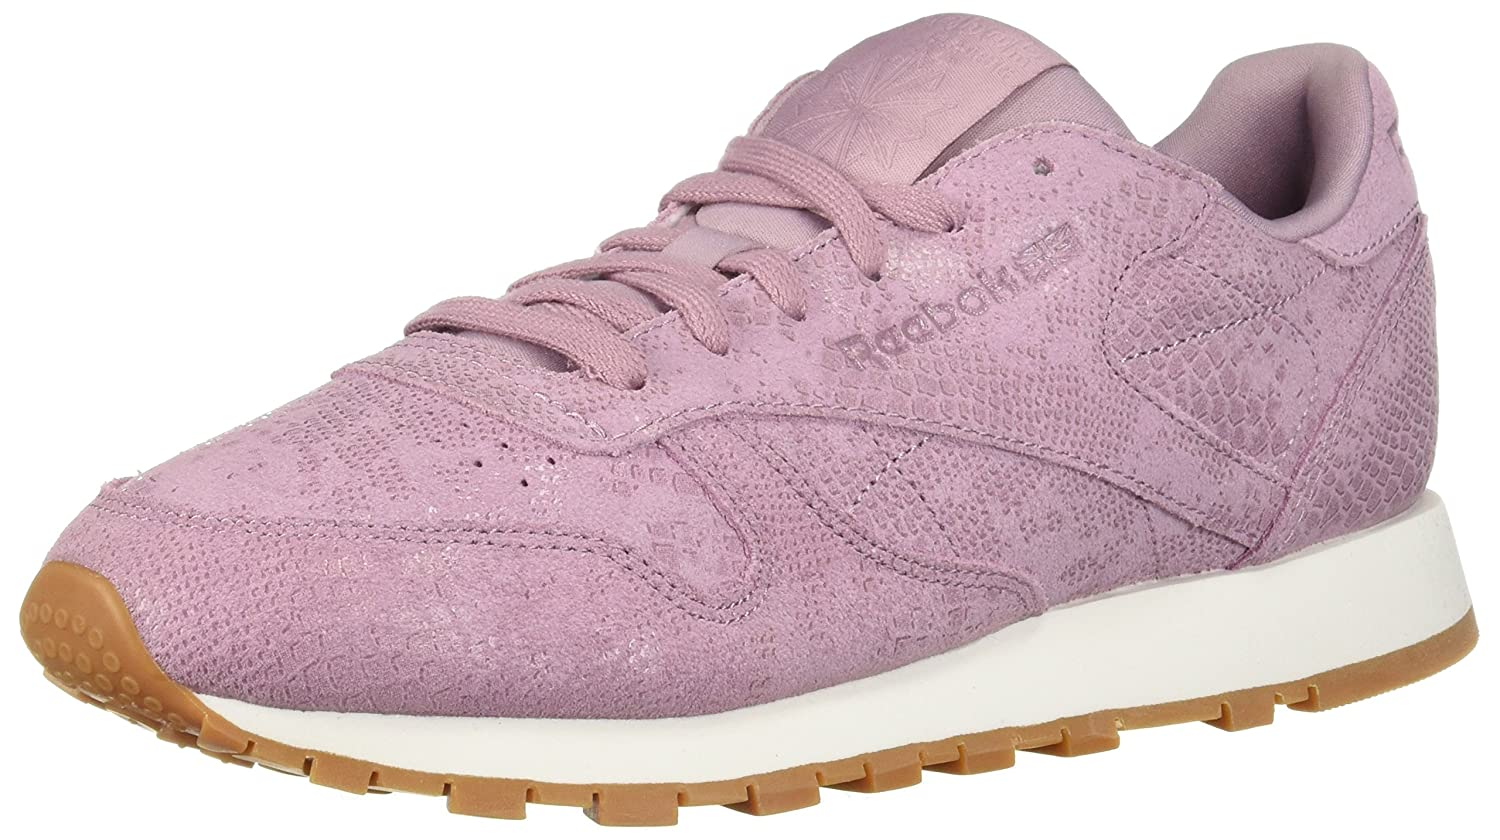 Reebok Women's Classic Leather Sneaker B077Z9HHC8 9.5 B(M) US|Exotics-infused Lilac/Cha